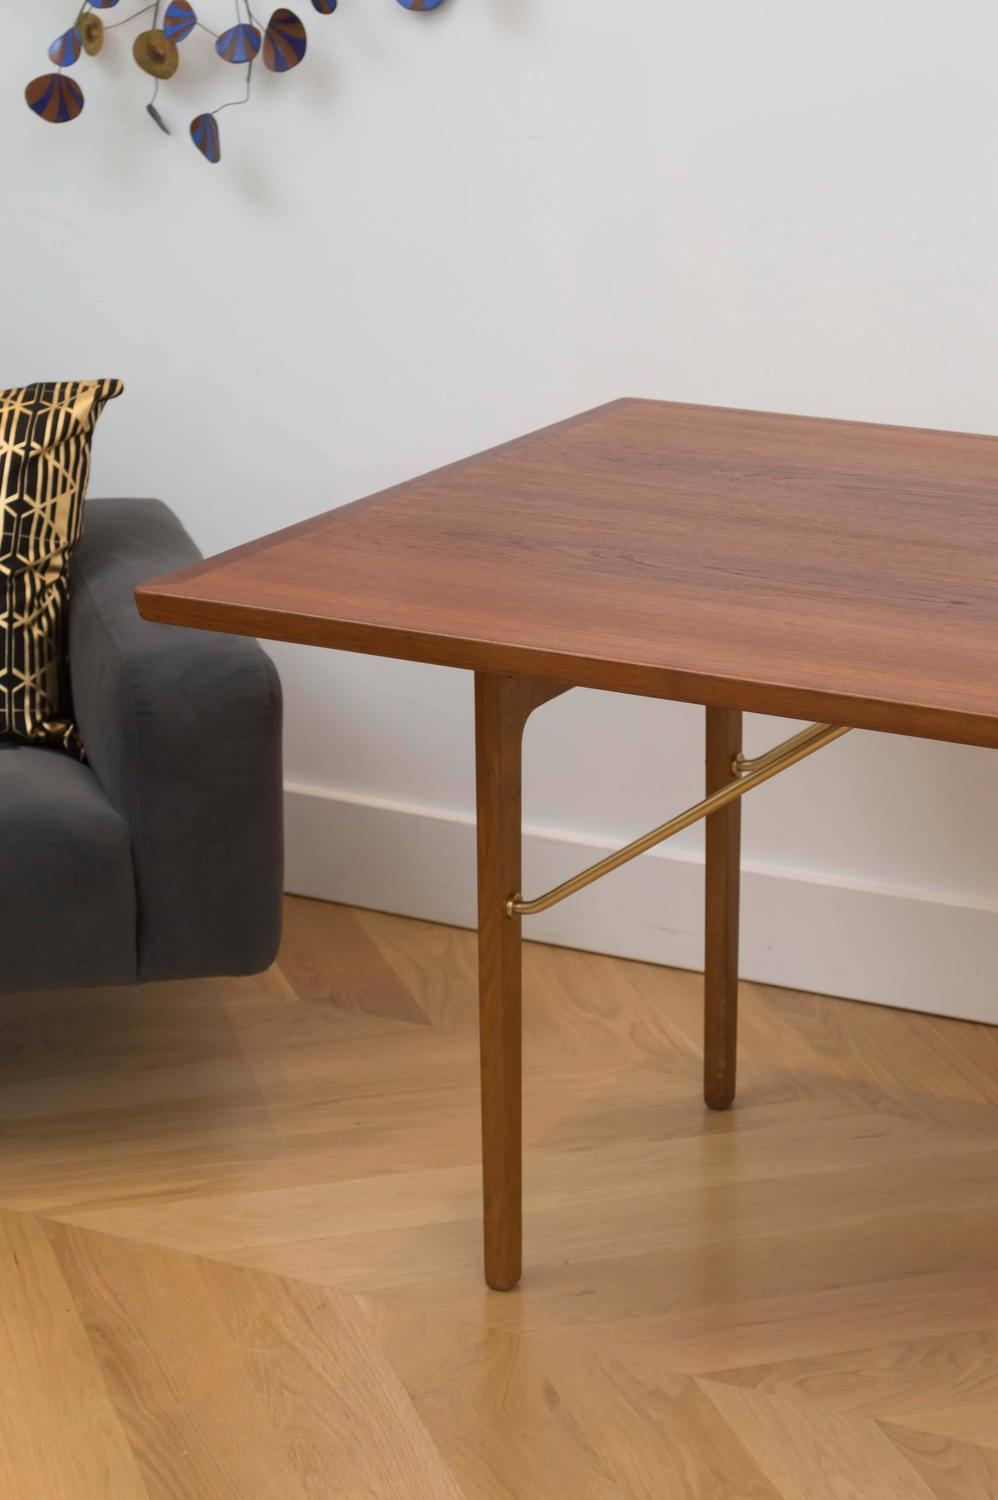 Torben strandgaard work table for sale at 1stdibs for G furniture tuam road galway